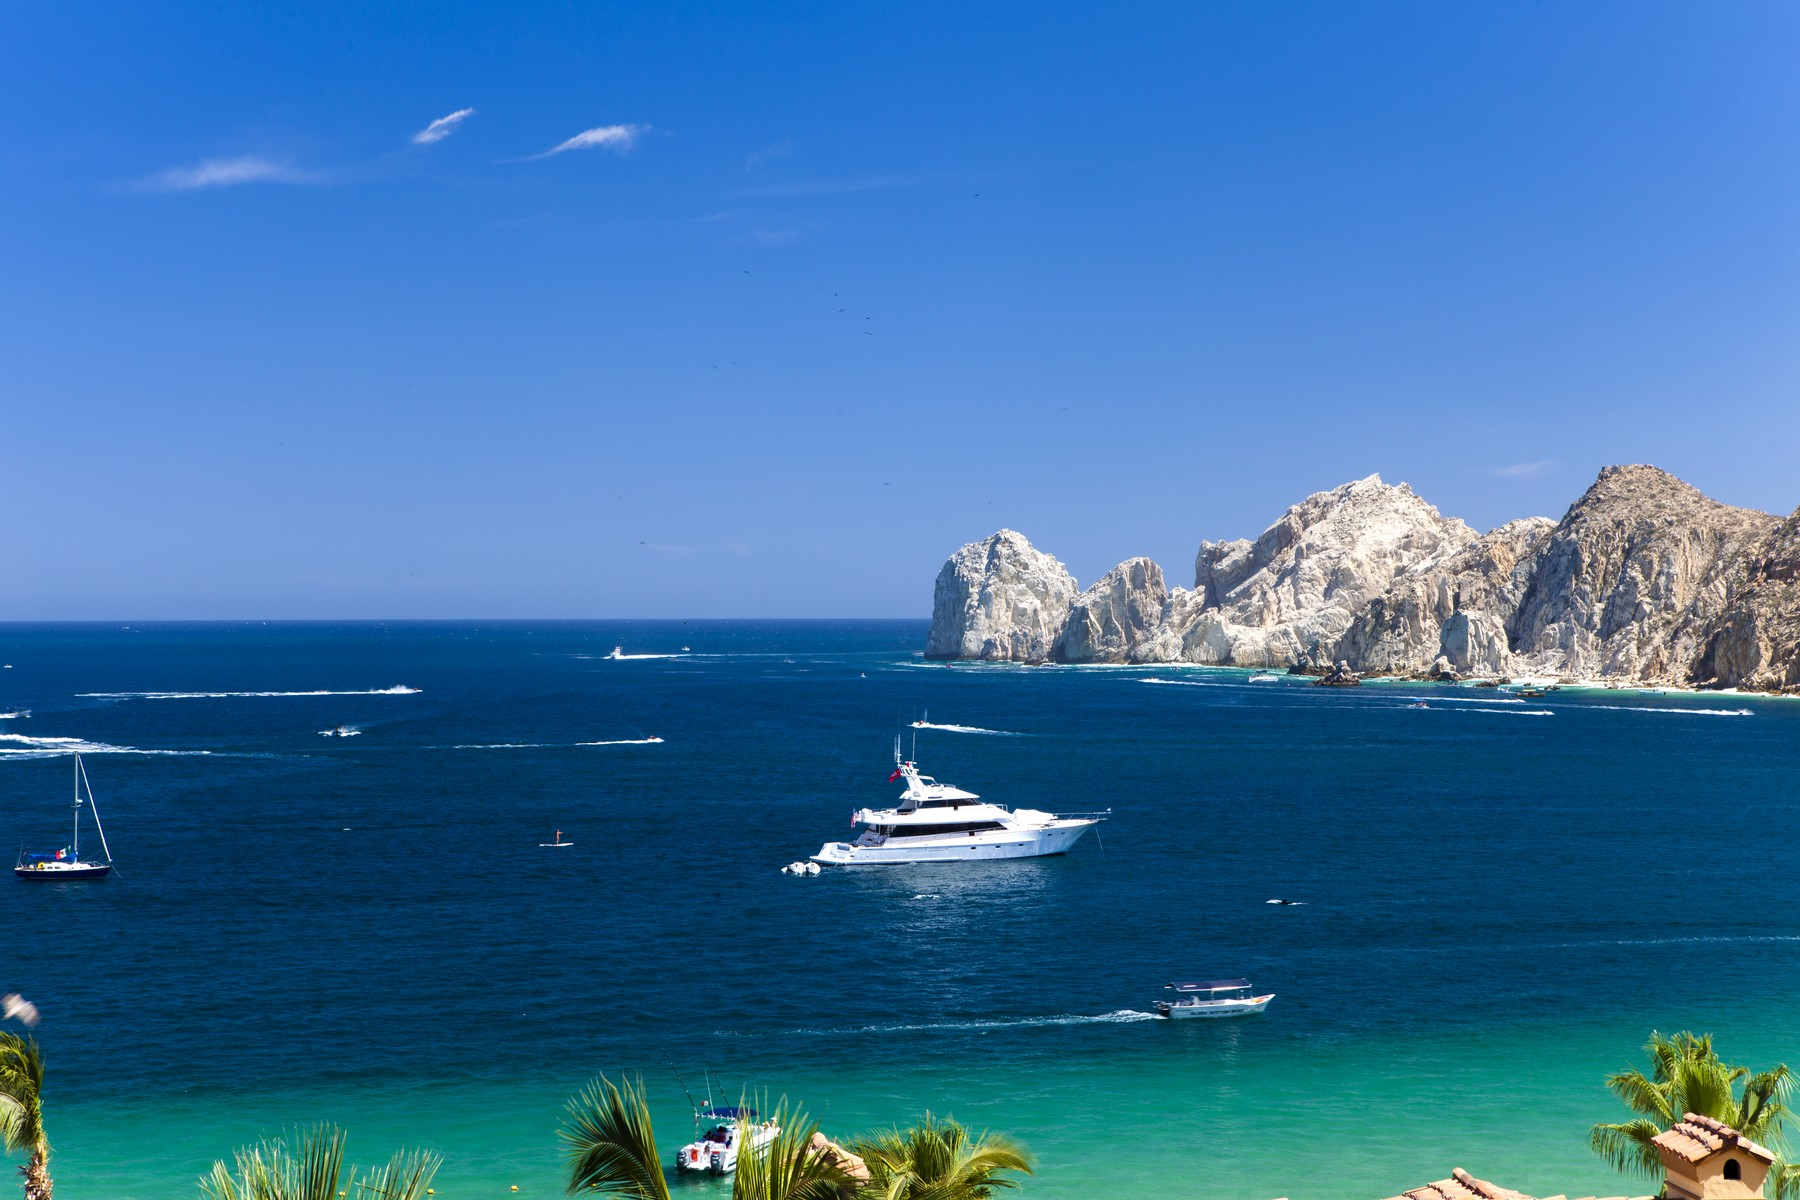 شقة بعمارة للـ Rent في Collection 1303 Hacienda Beach Club & Residences Collection 1303 Cabo San Lucas, Baja California Sur, 23453 Mexico